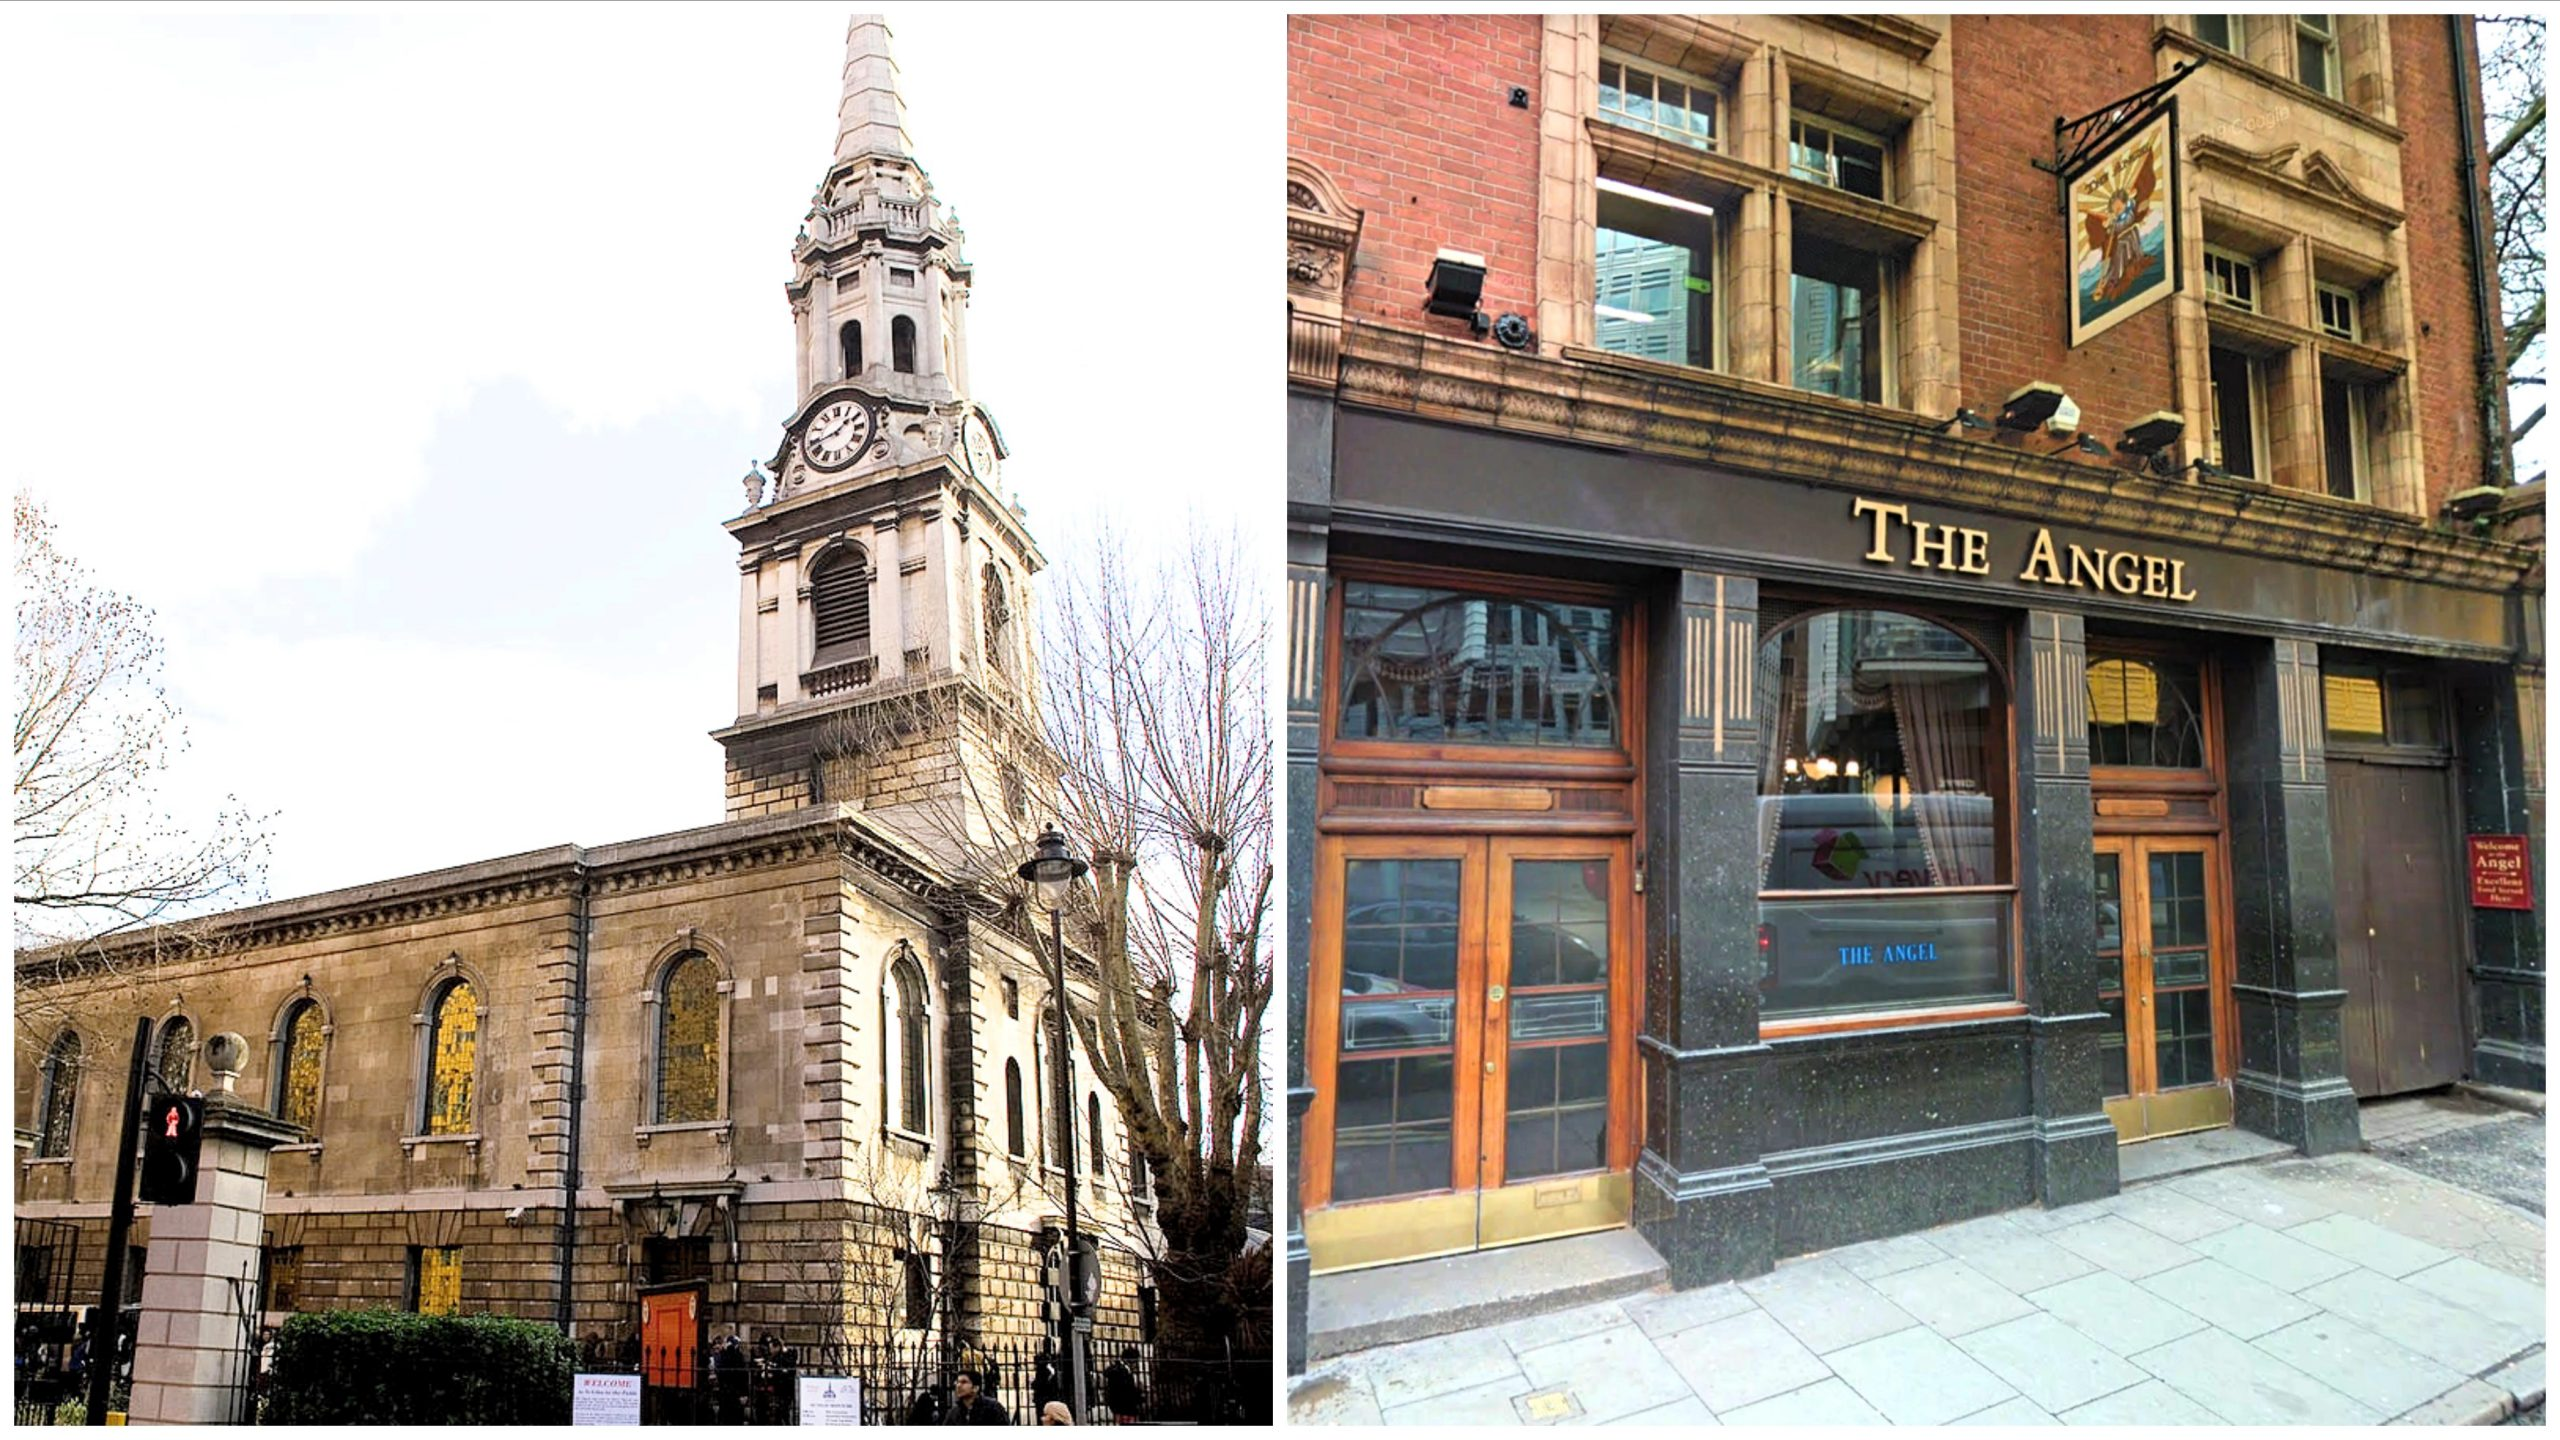 St Giles-in-the-Fields church and the Angel pub